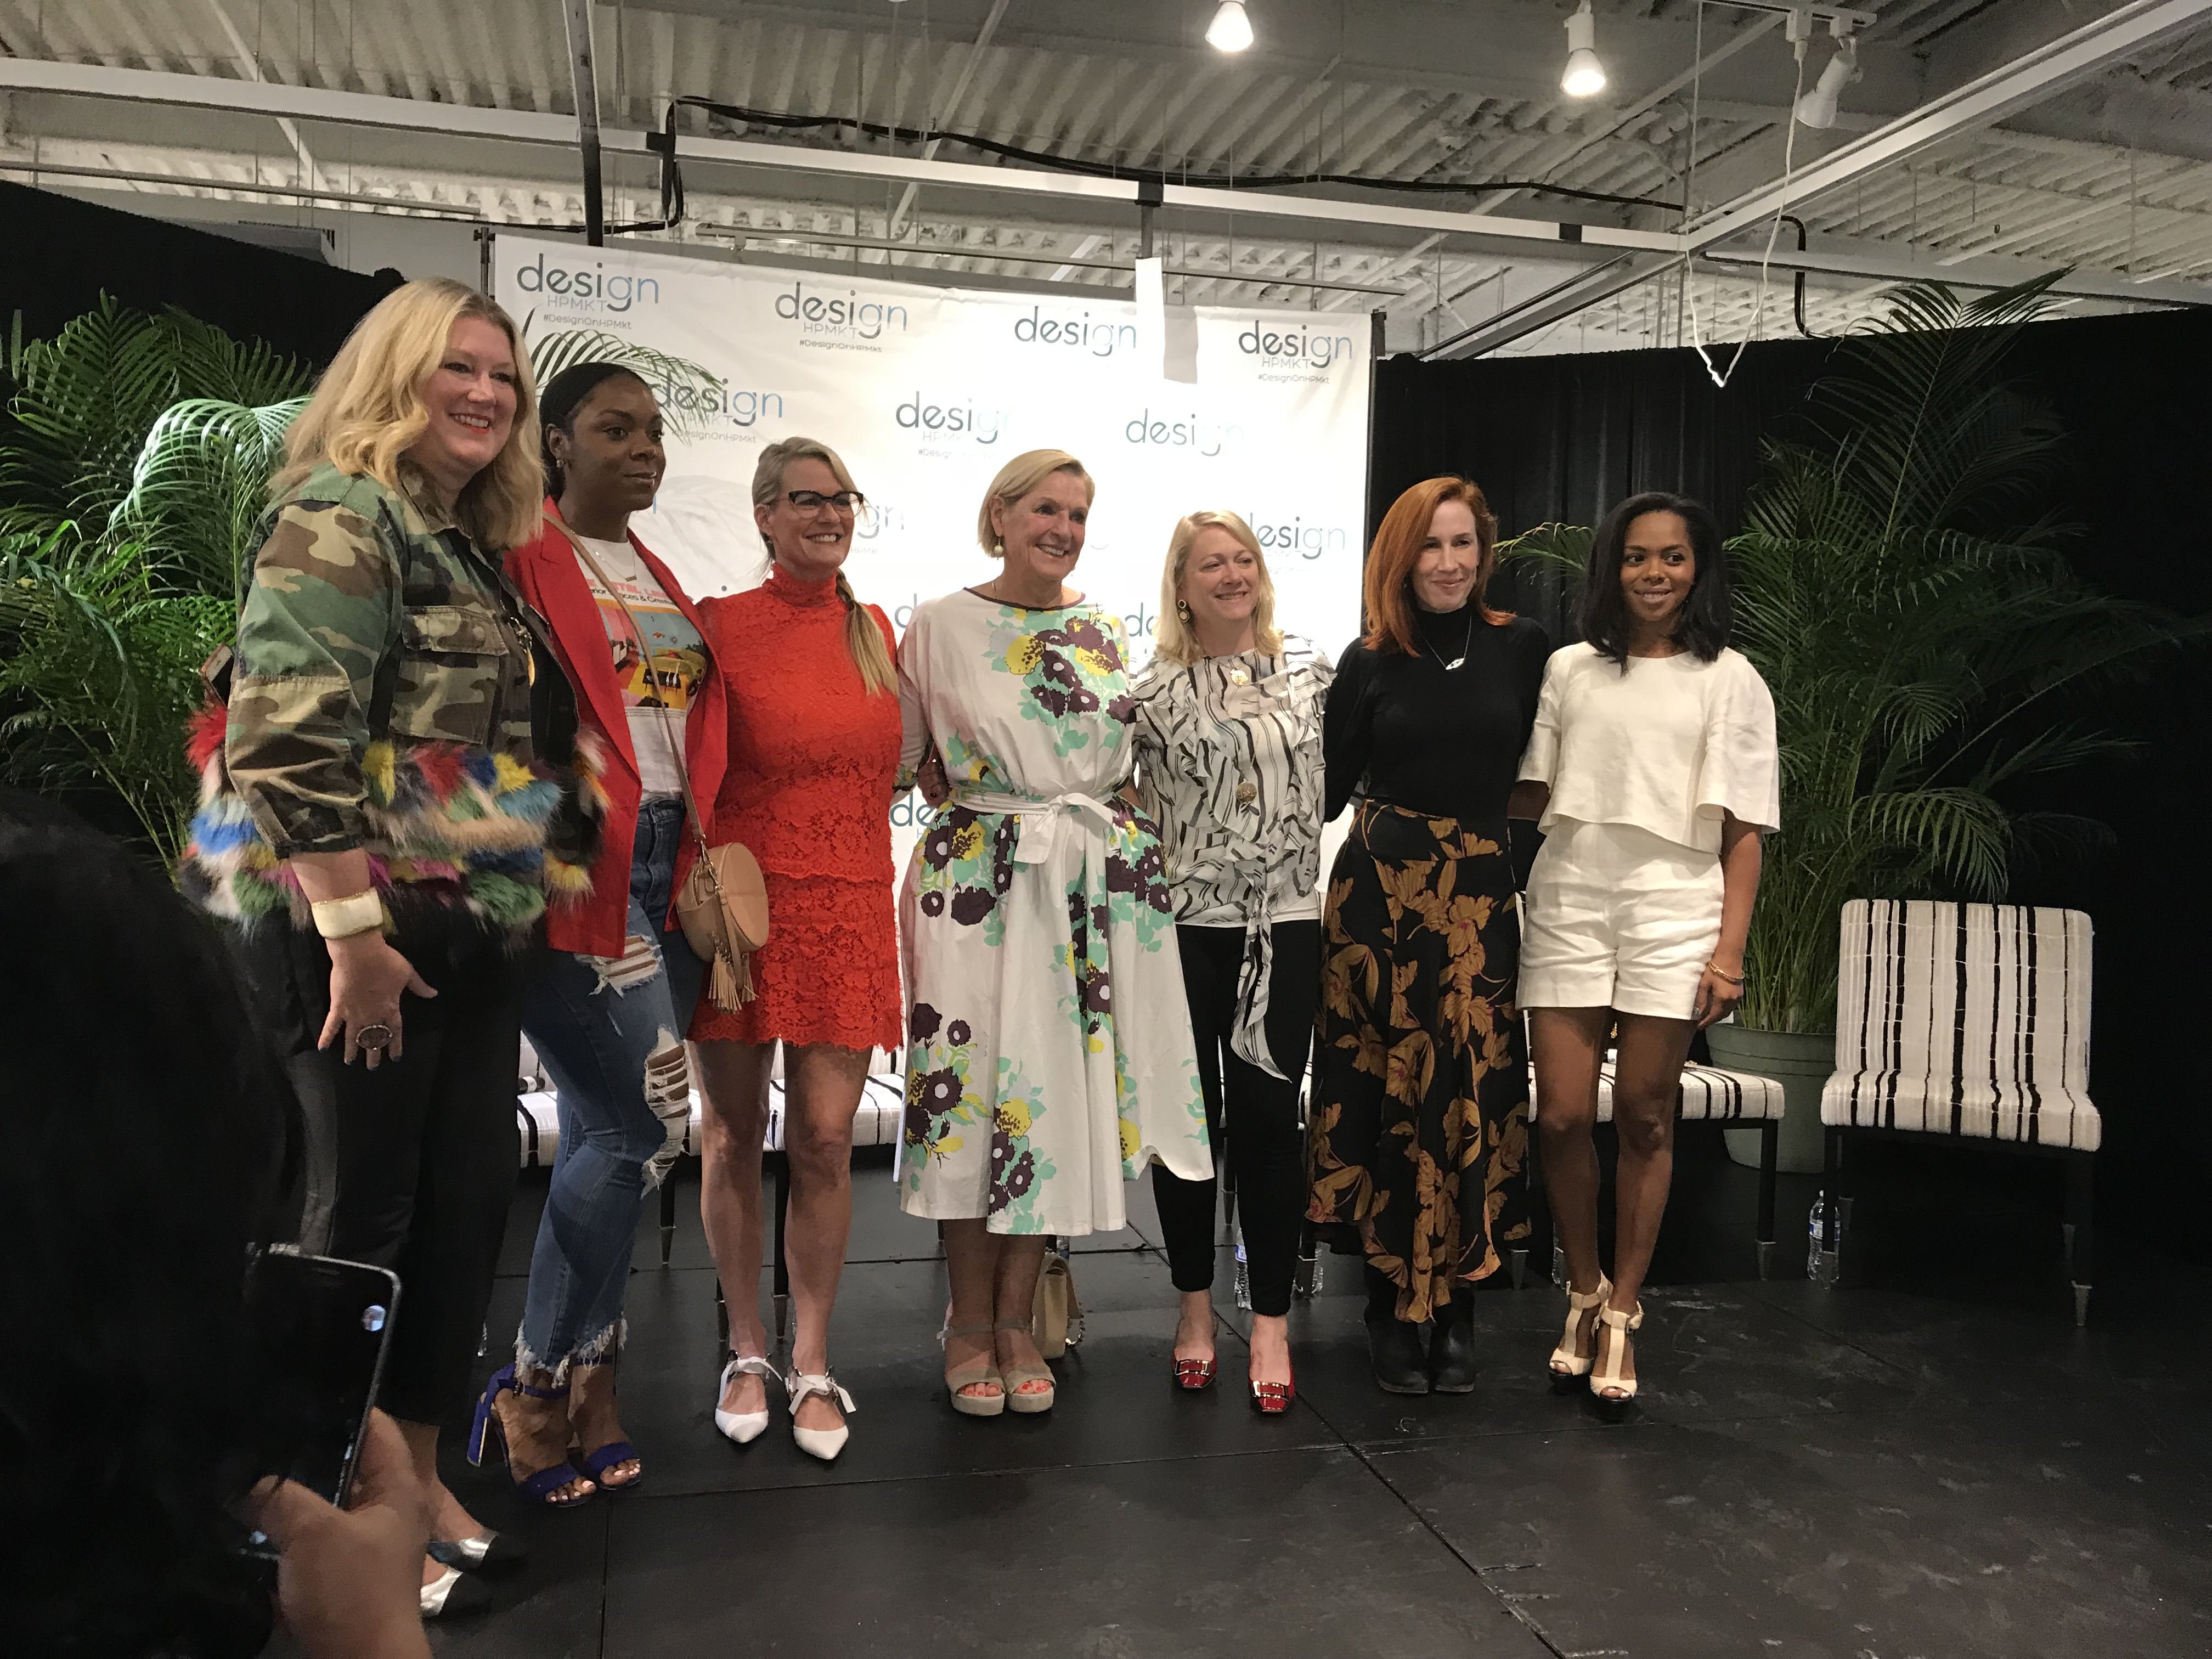 Fearless Design Panel moderated by Holly Hollingsworth Phillips with Mally Skok, Julia Buckingham, Jaimie Meares, Alison Mattison, Tavia Forbes and Monet Masters